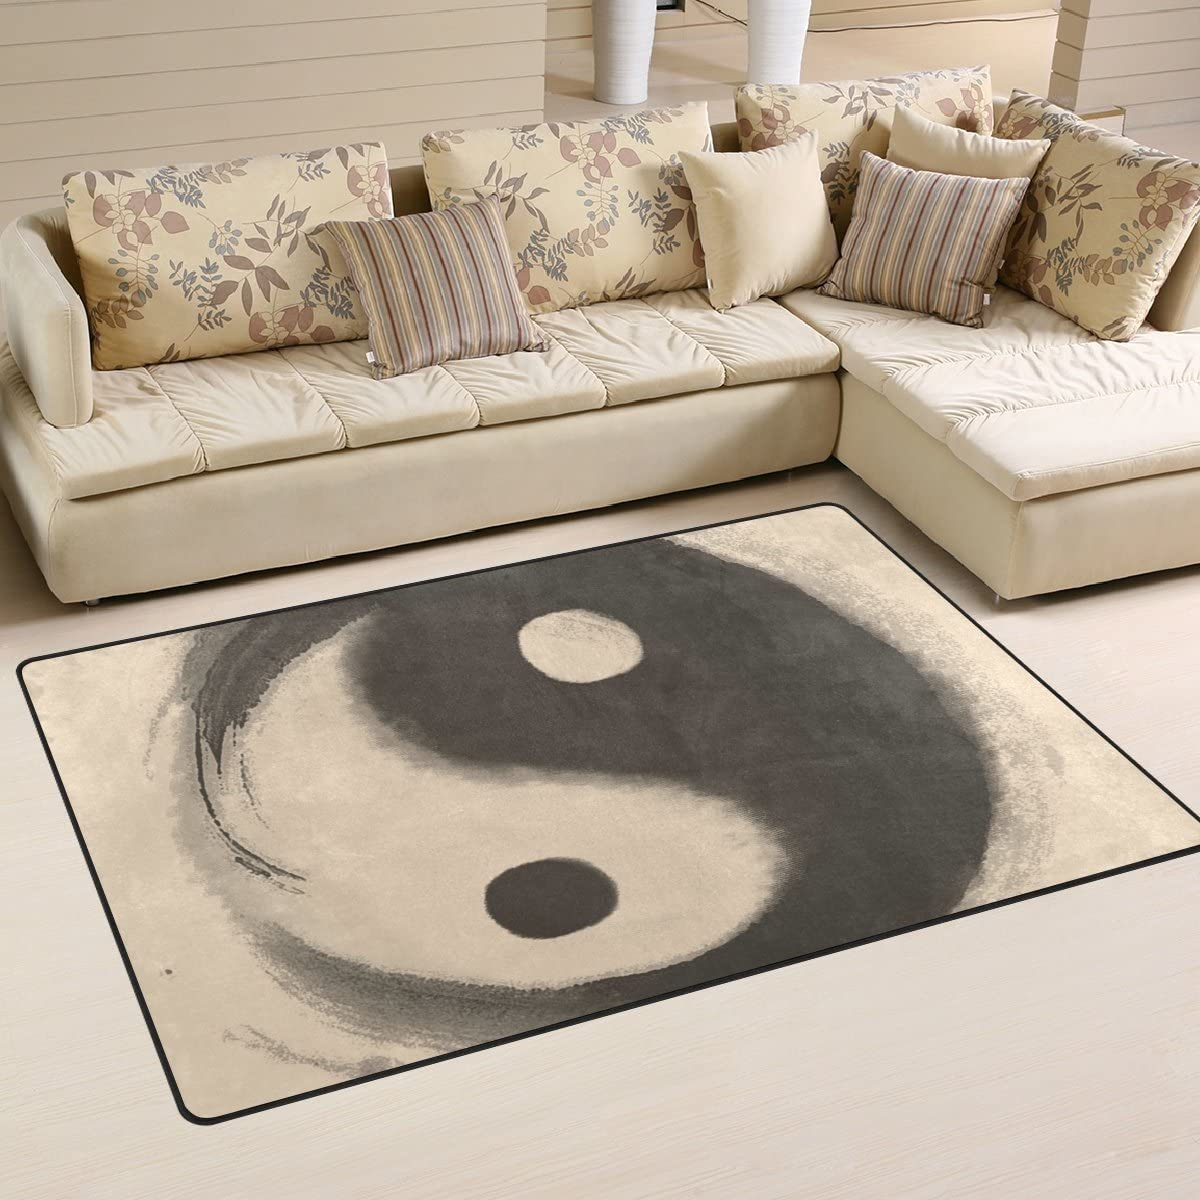 LORVIES Watercolor Ying Yang Area Rug Carpet Non-Slip Floor Mat Doormats for Living Room Bedroom 60 x 39 inches